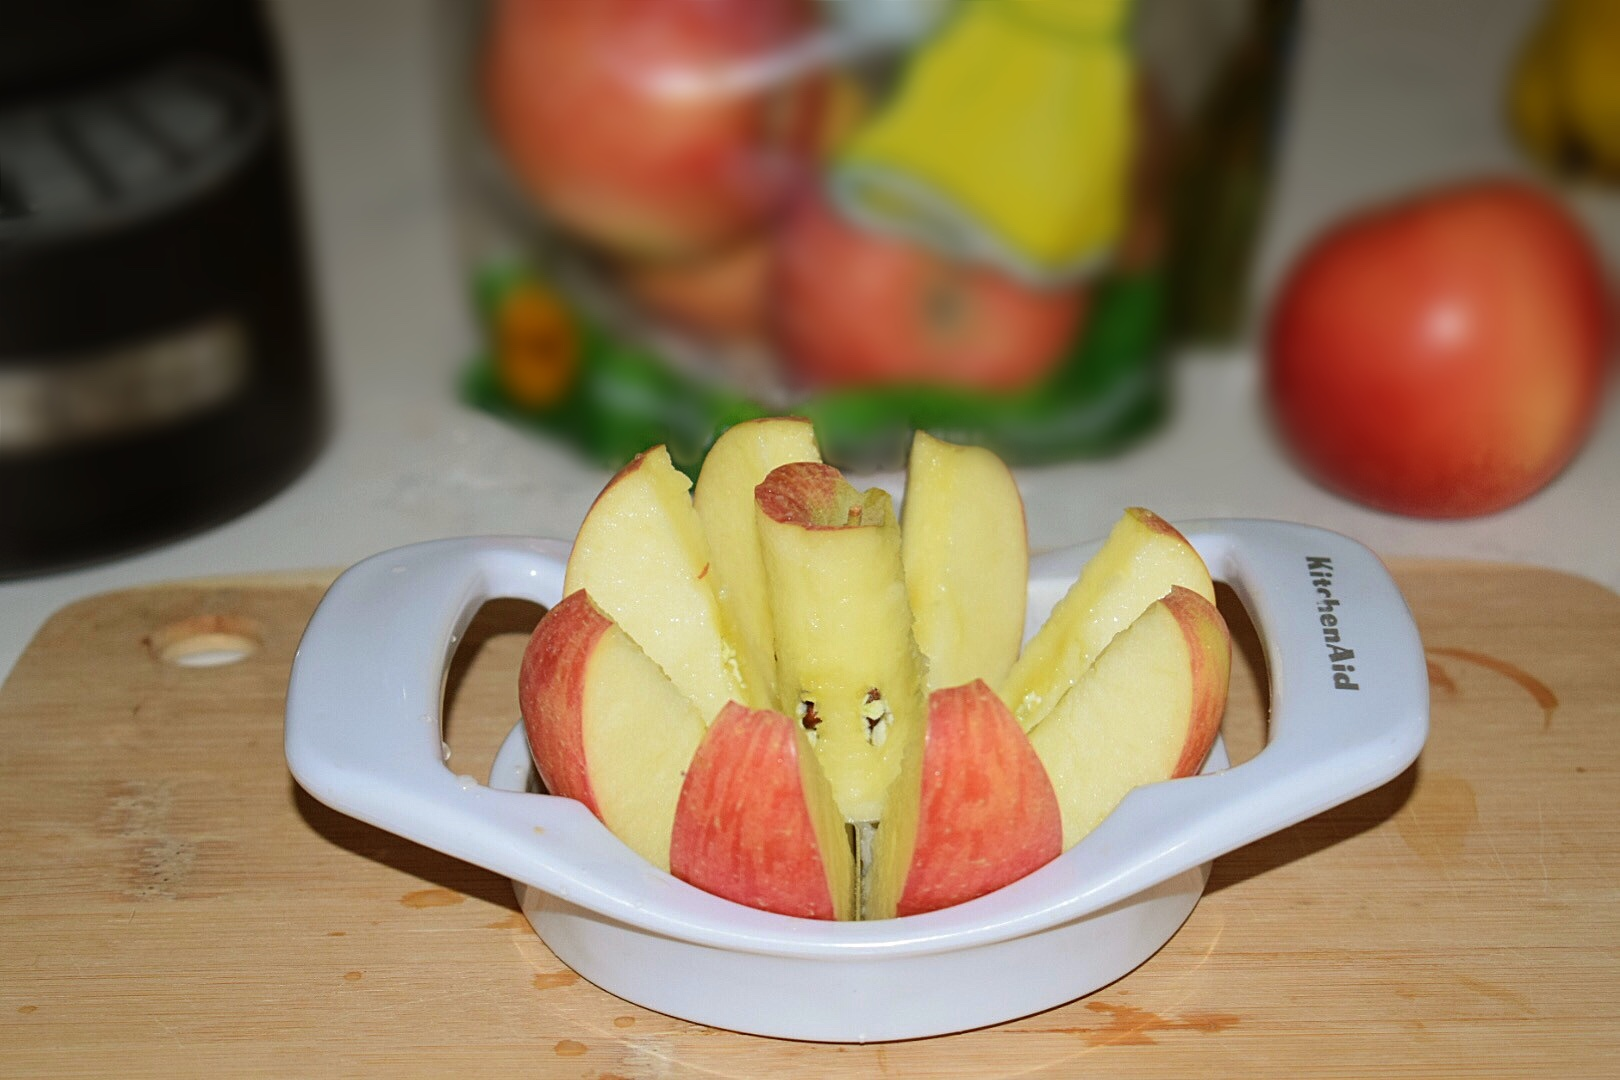 KitchenAid Apple Slicer and Corer makes slicing and coring apples so easy